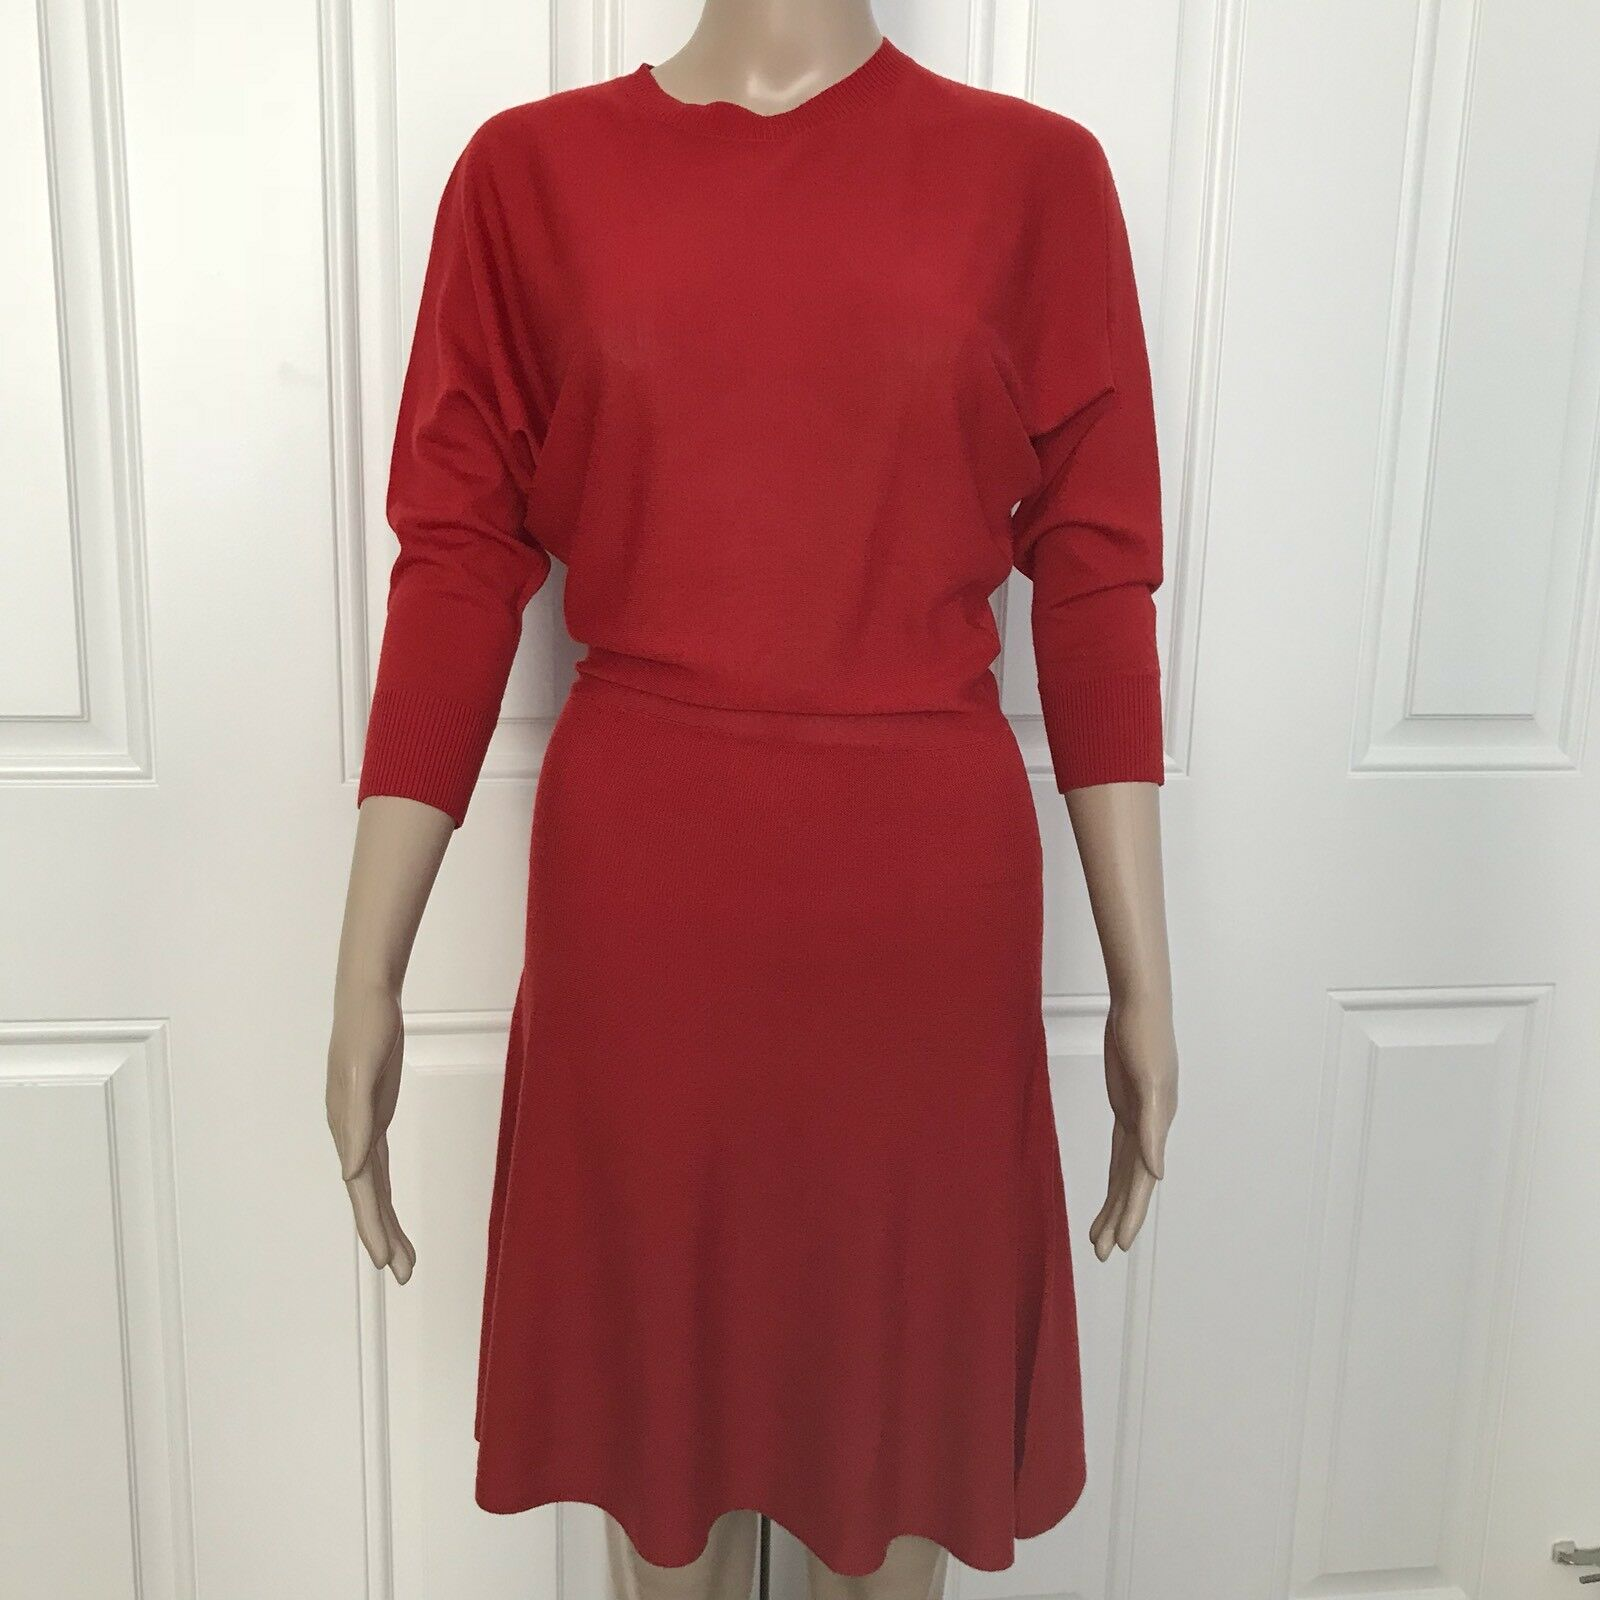 695 NWT Sexy HANLEY Womens M Red 100% Merino Wool Knit Fit & Flare A-Line Dress